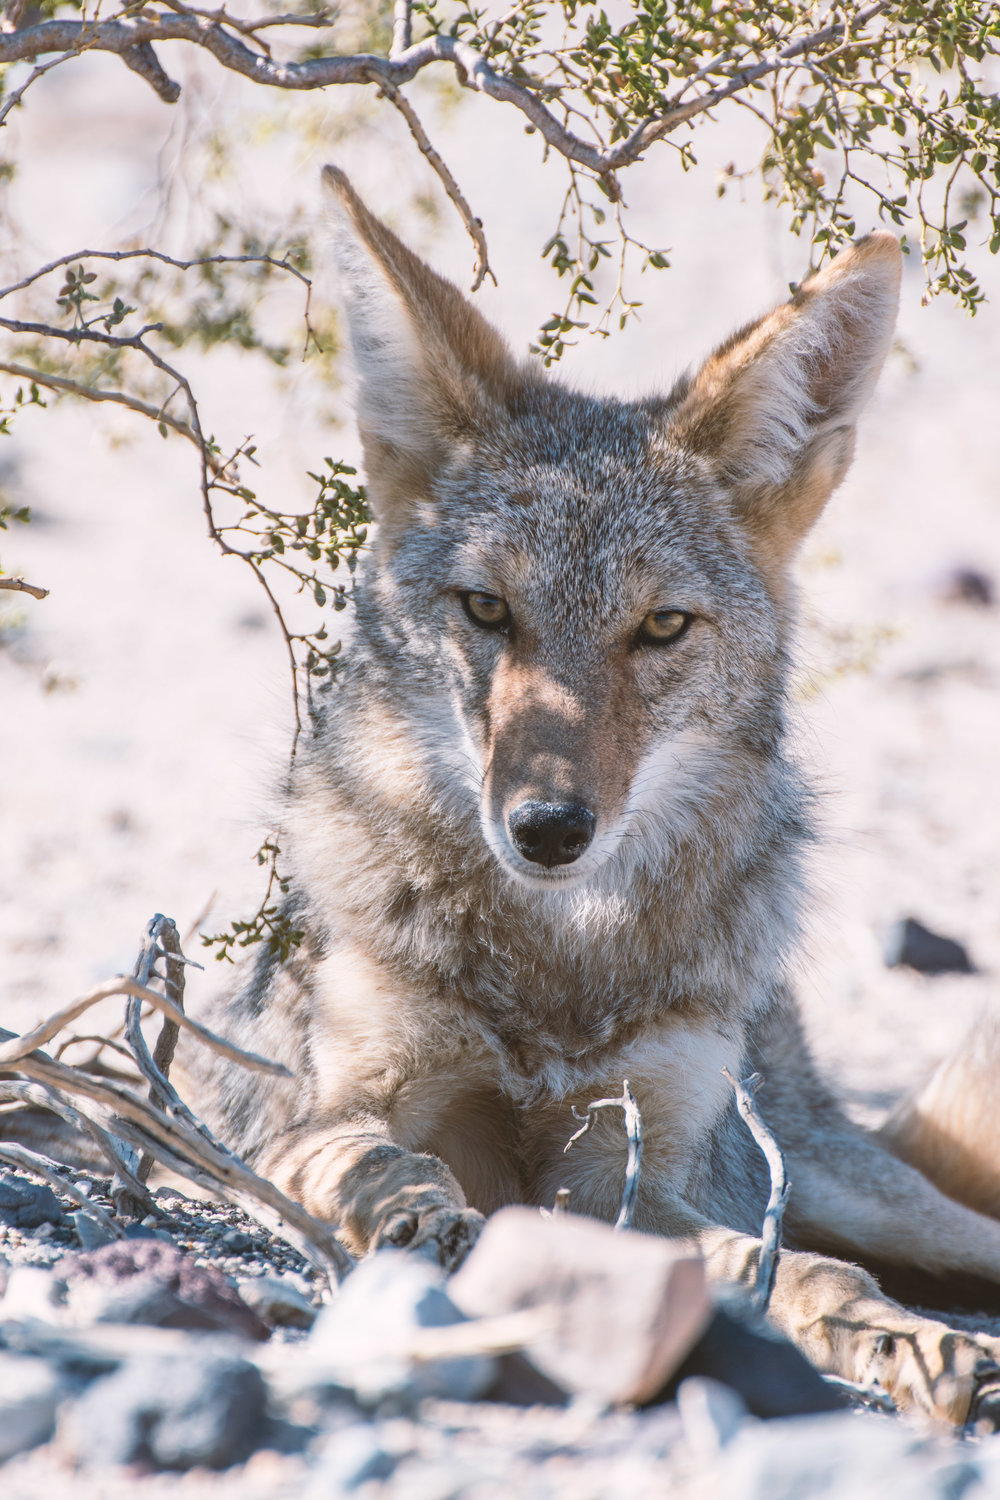 One Important Thing: If there's more action on Wile E. Coyote's Tinder account than usual, know that it's because it's coyote mating season. Coyotes are fairly common to the area, so watch out for your indoor-outdoor pets; mating season means the wild canines will need more calories than other times in the year. During mating season, with hormones running amok, they may be somewhat more aggressive than usual. Use precautions when outdoors, particularly at dawn and dusk. -